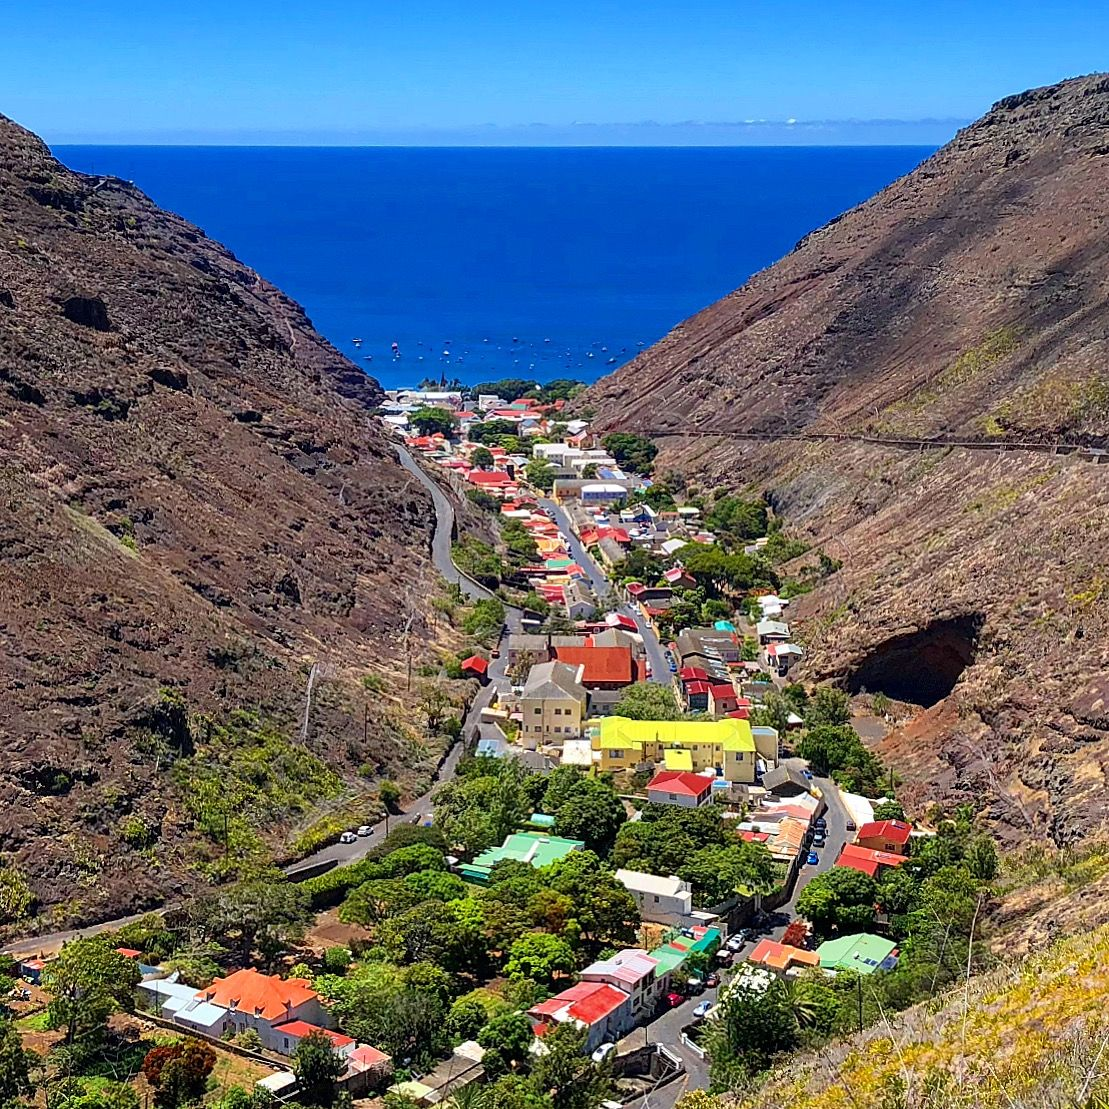 The Essential St. Helena Travel Guide | Saint helena island, St helena,  Island travel